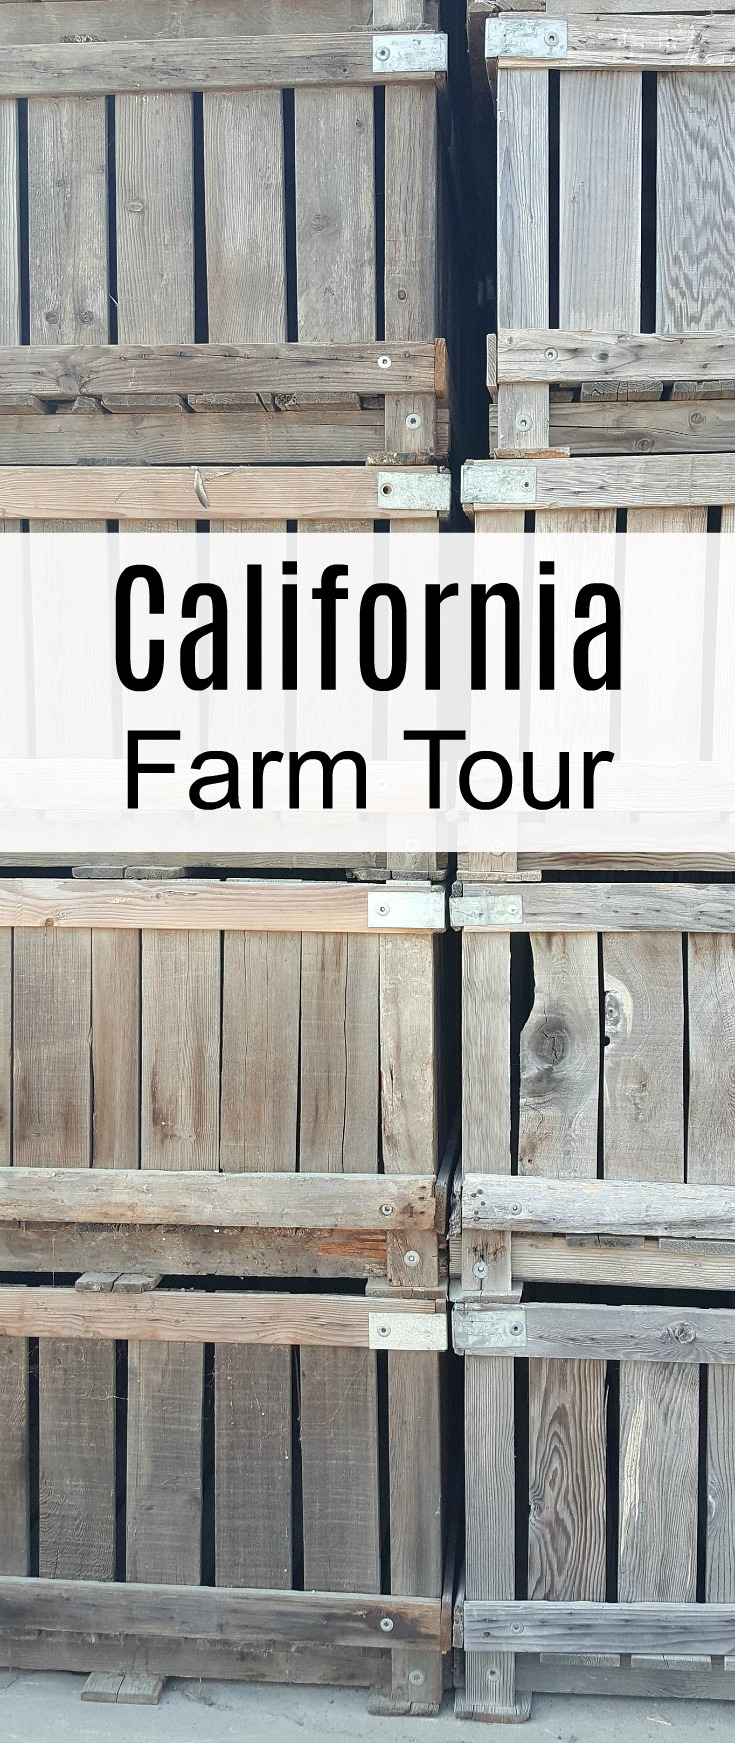 California Central Valley Farm Tour - A behind the scenes look at dairy, nuts, grains, fruits and veggies grown in California